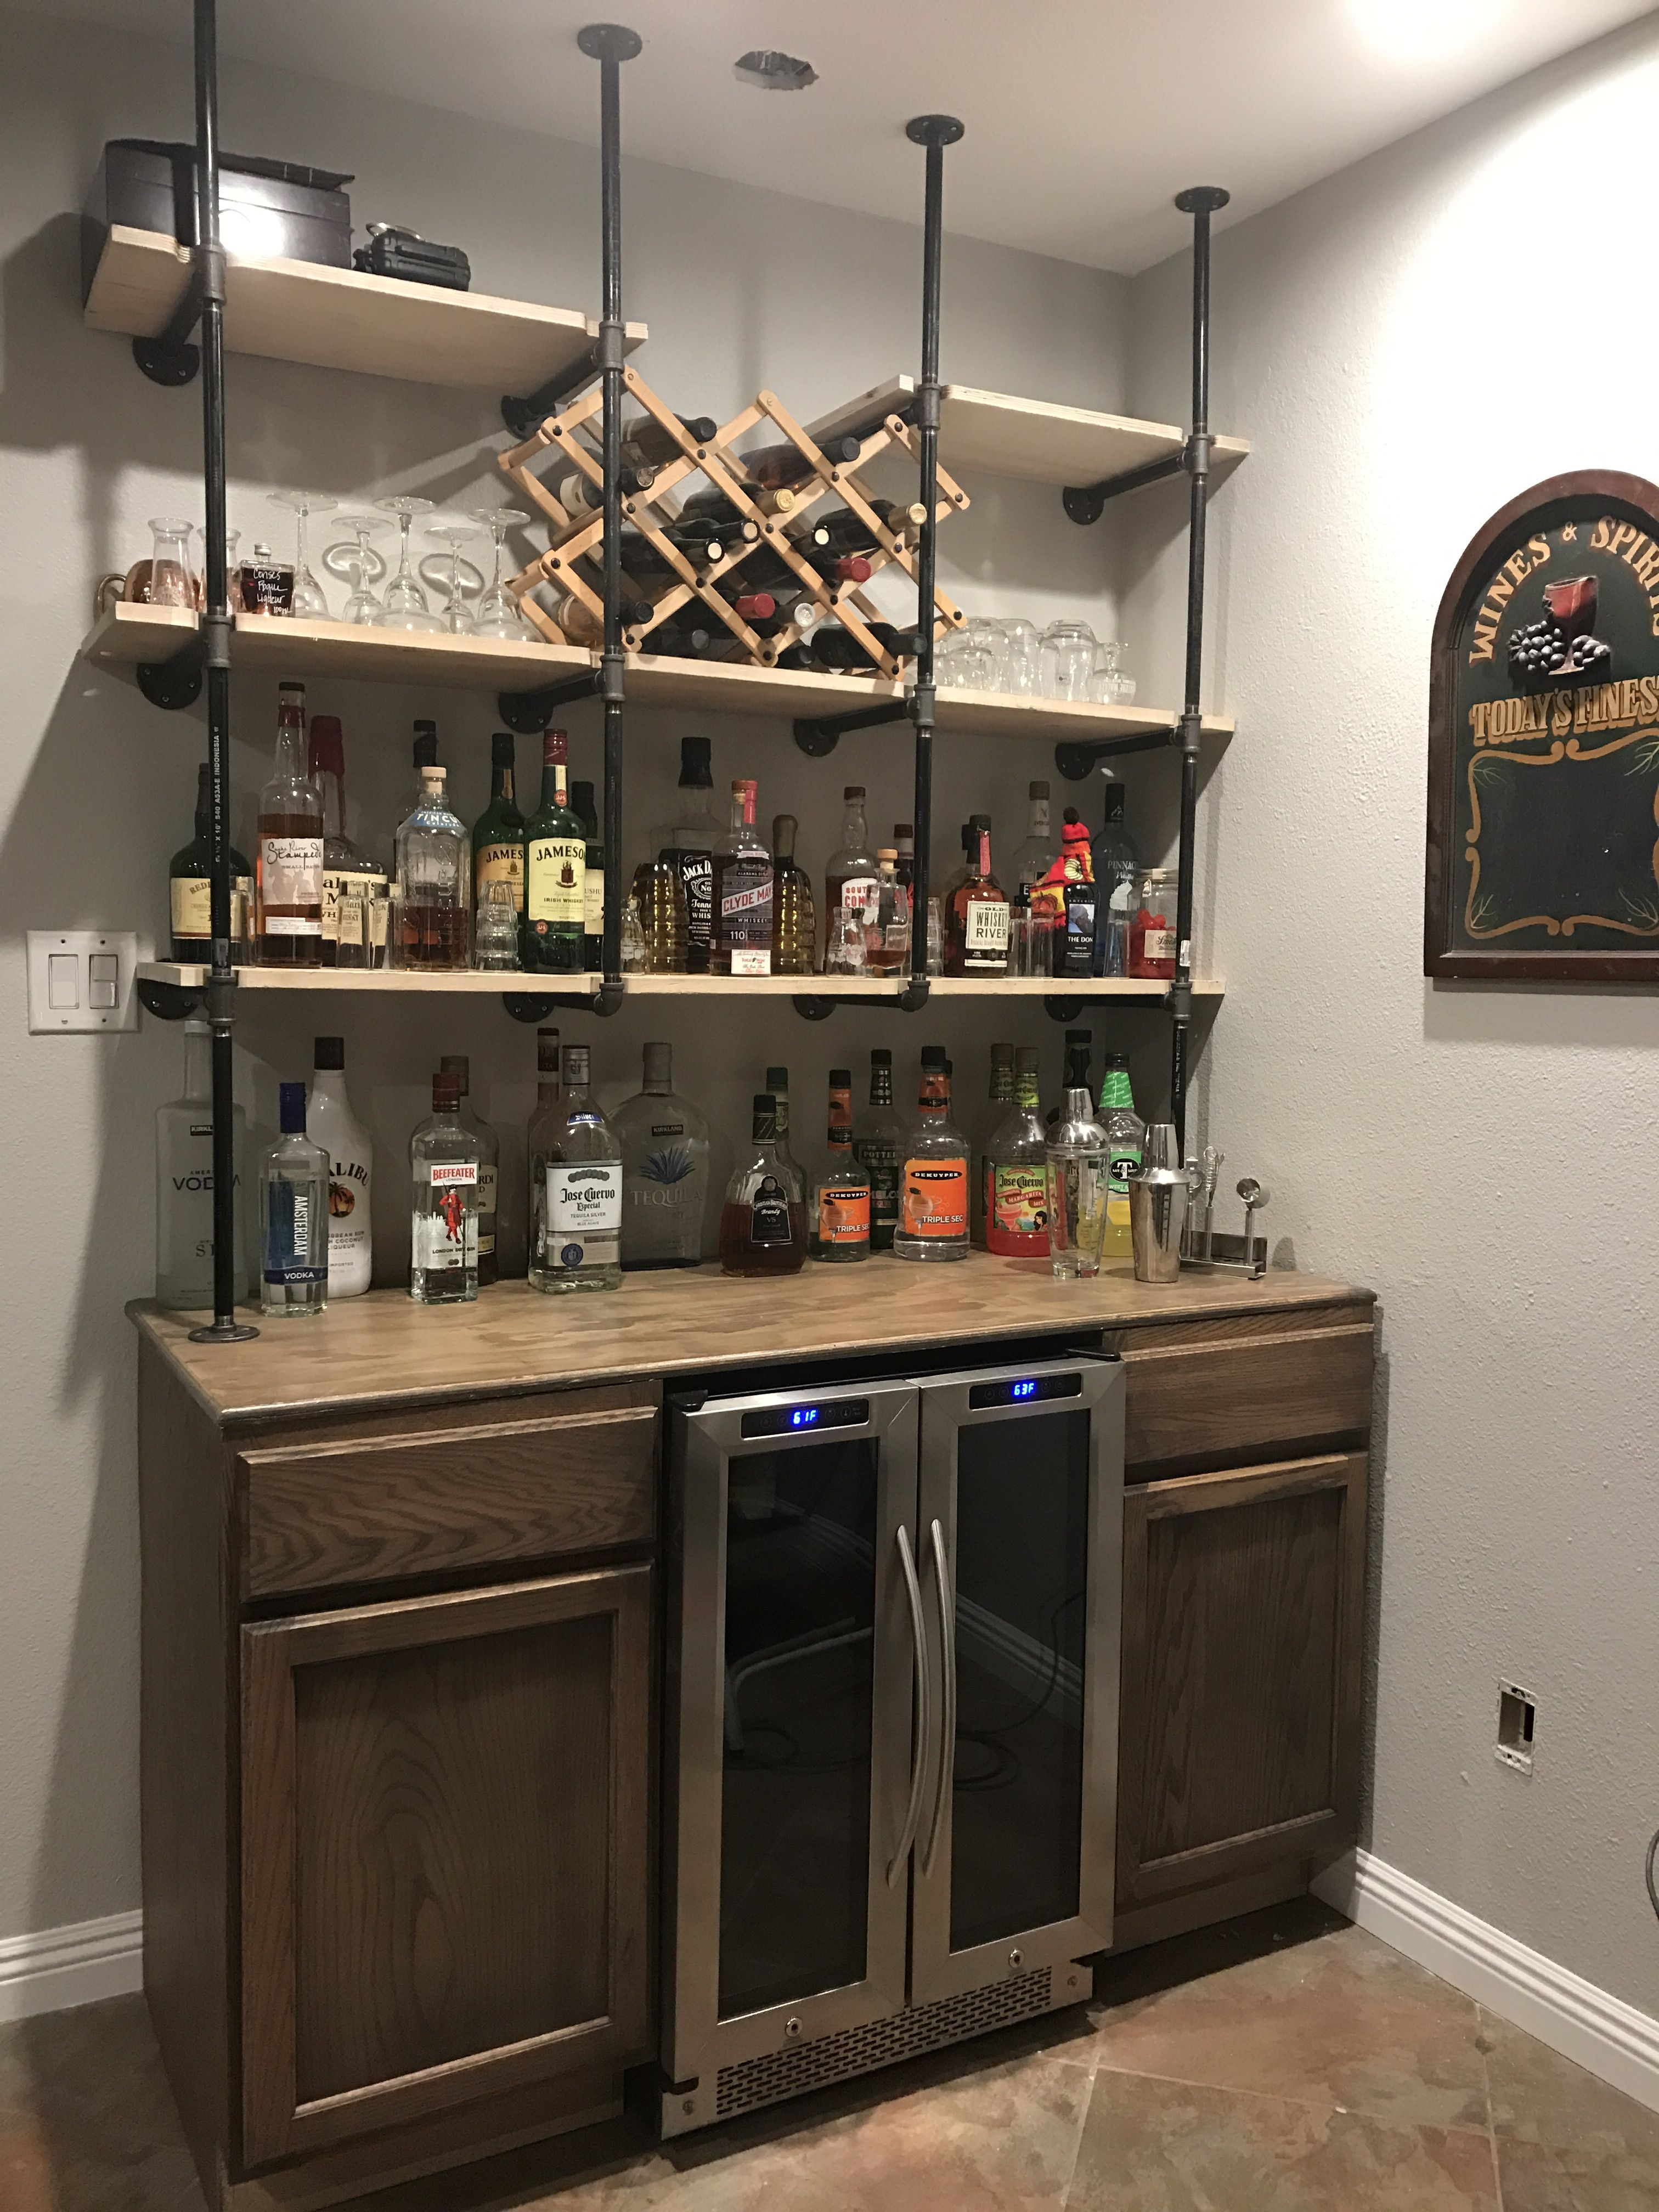 gas pipe shelves over rustic bar basement diy home floating behind old wooden shelving units cream ikea suction cup shower head holder steel support for granite countertop storage